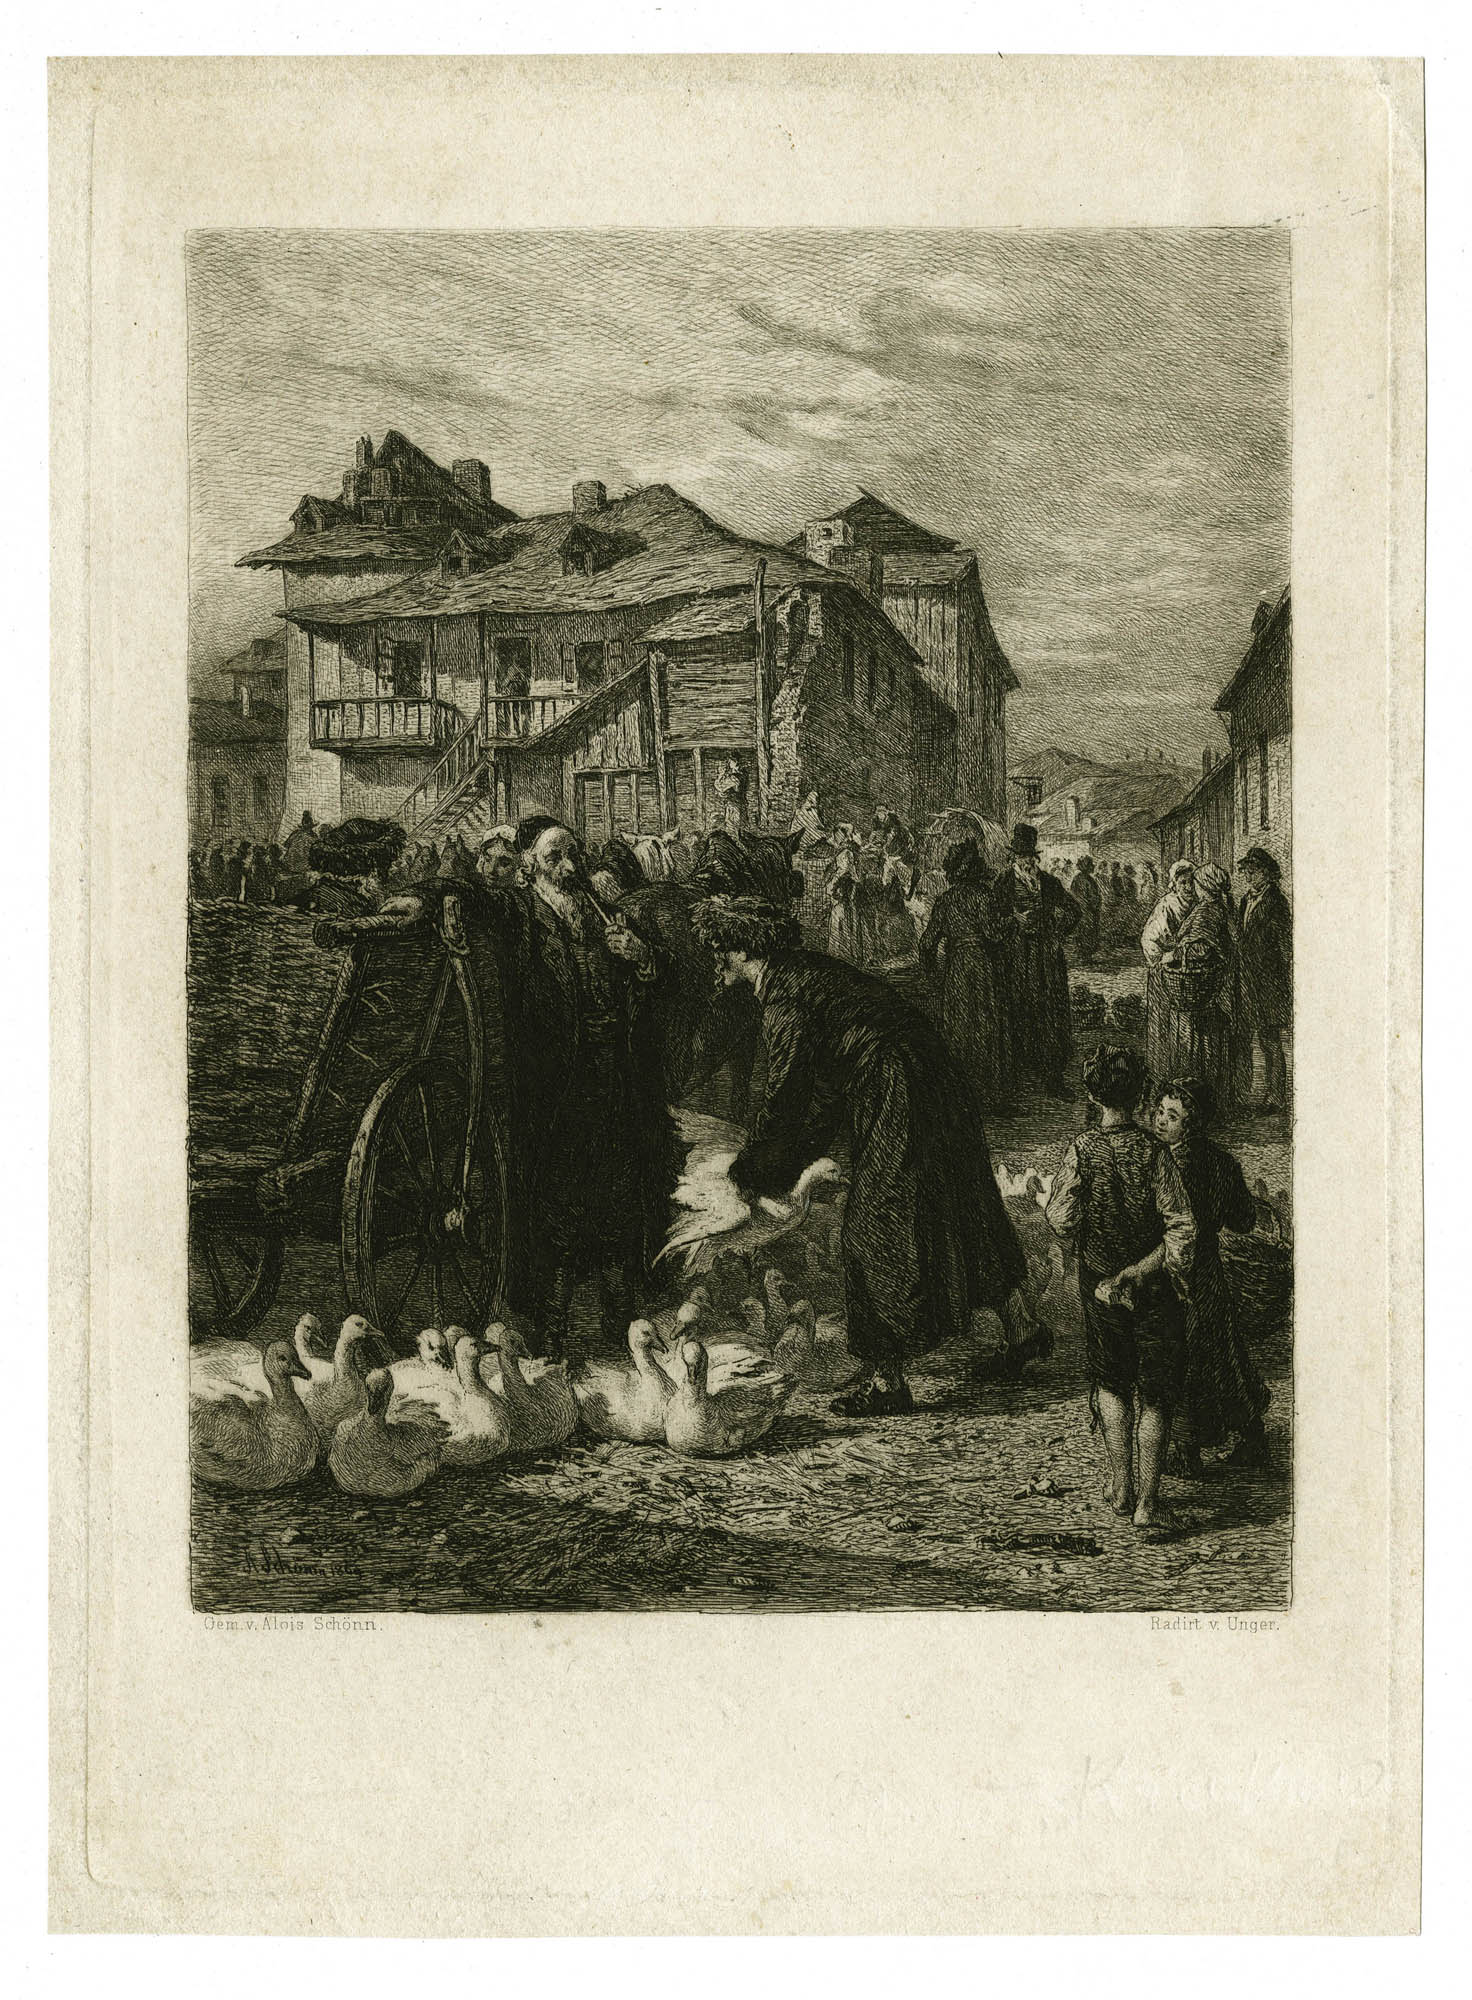 [Goose Market in Cracow]